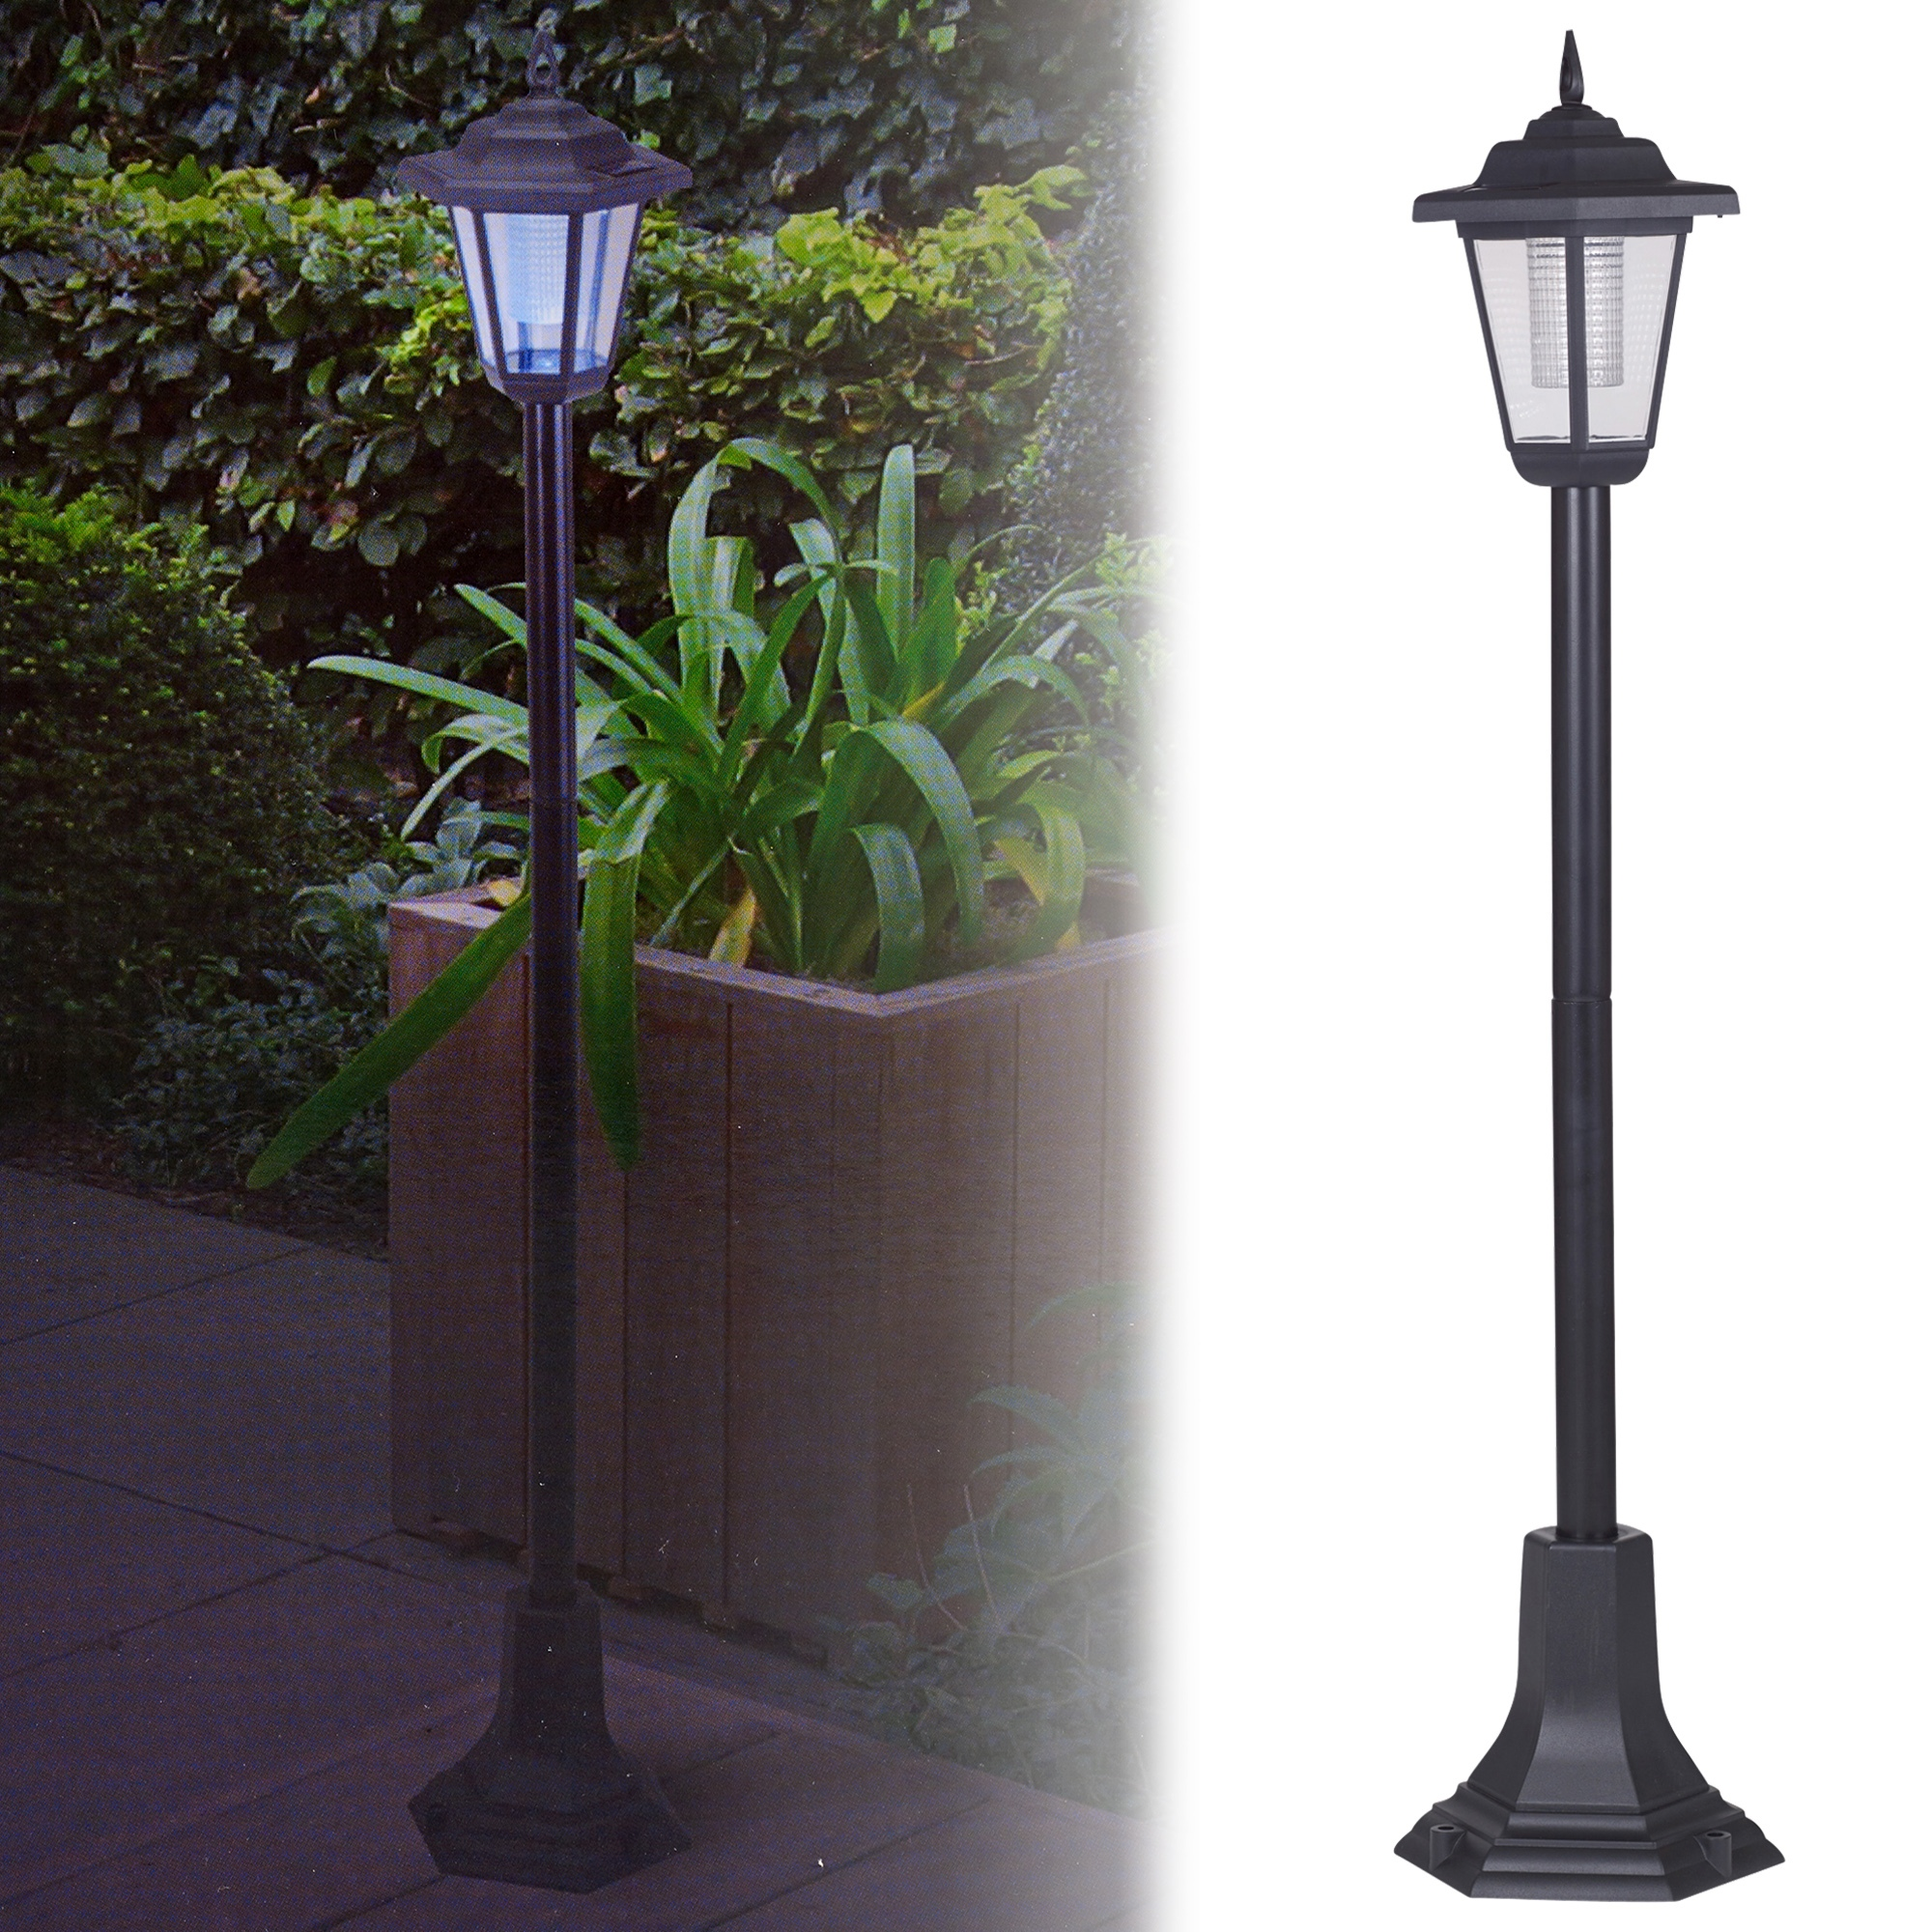 Solar powered garden lights lantern lamp black led pathway driveway item specifics aloadofball